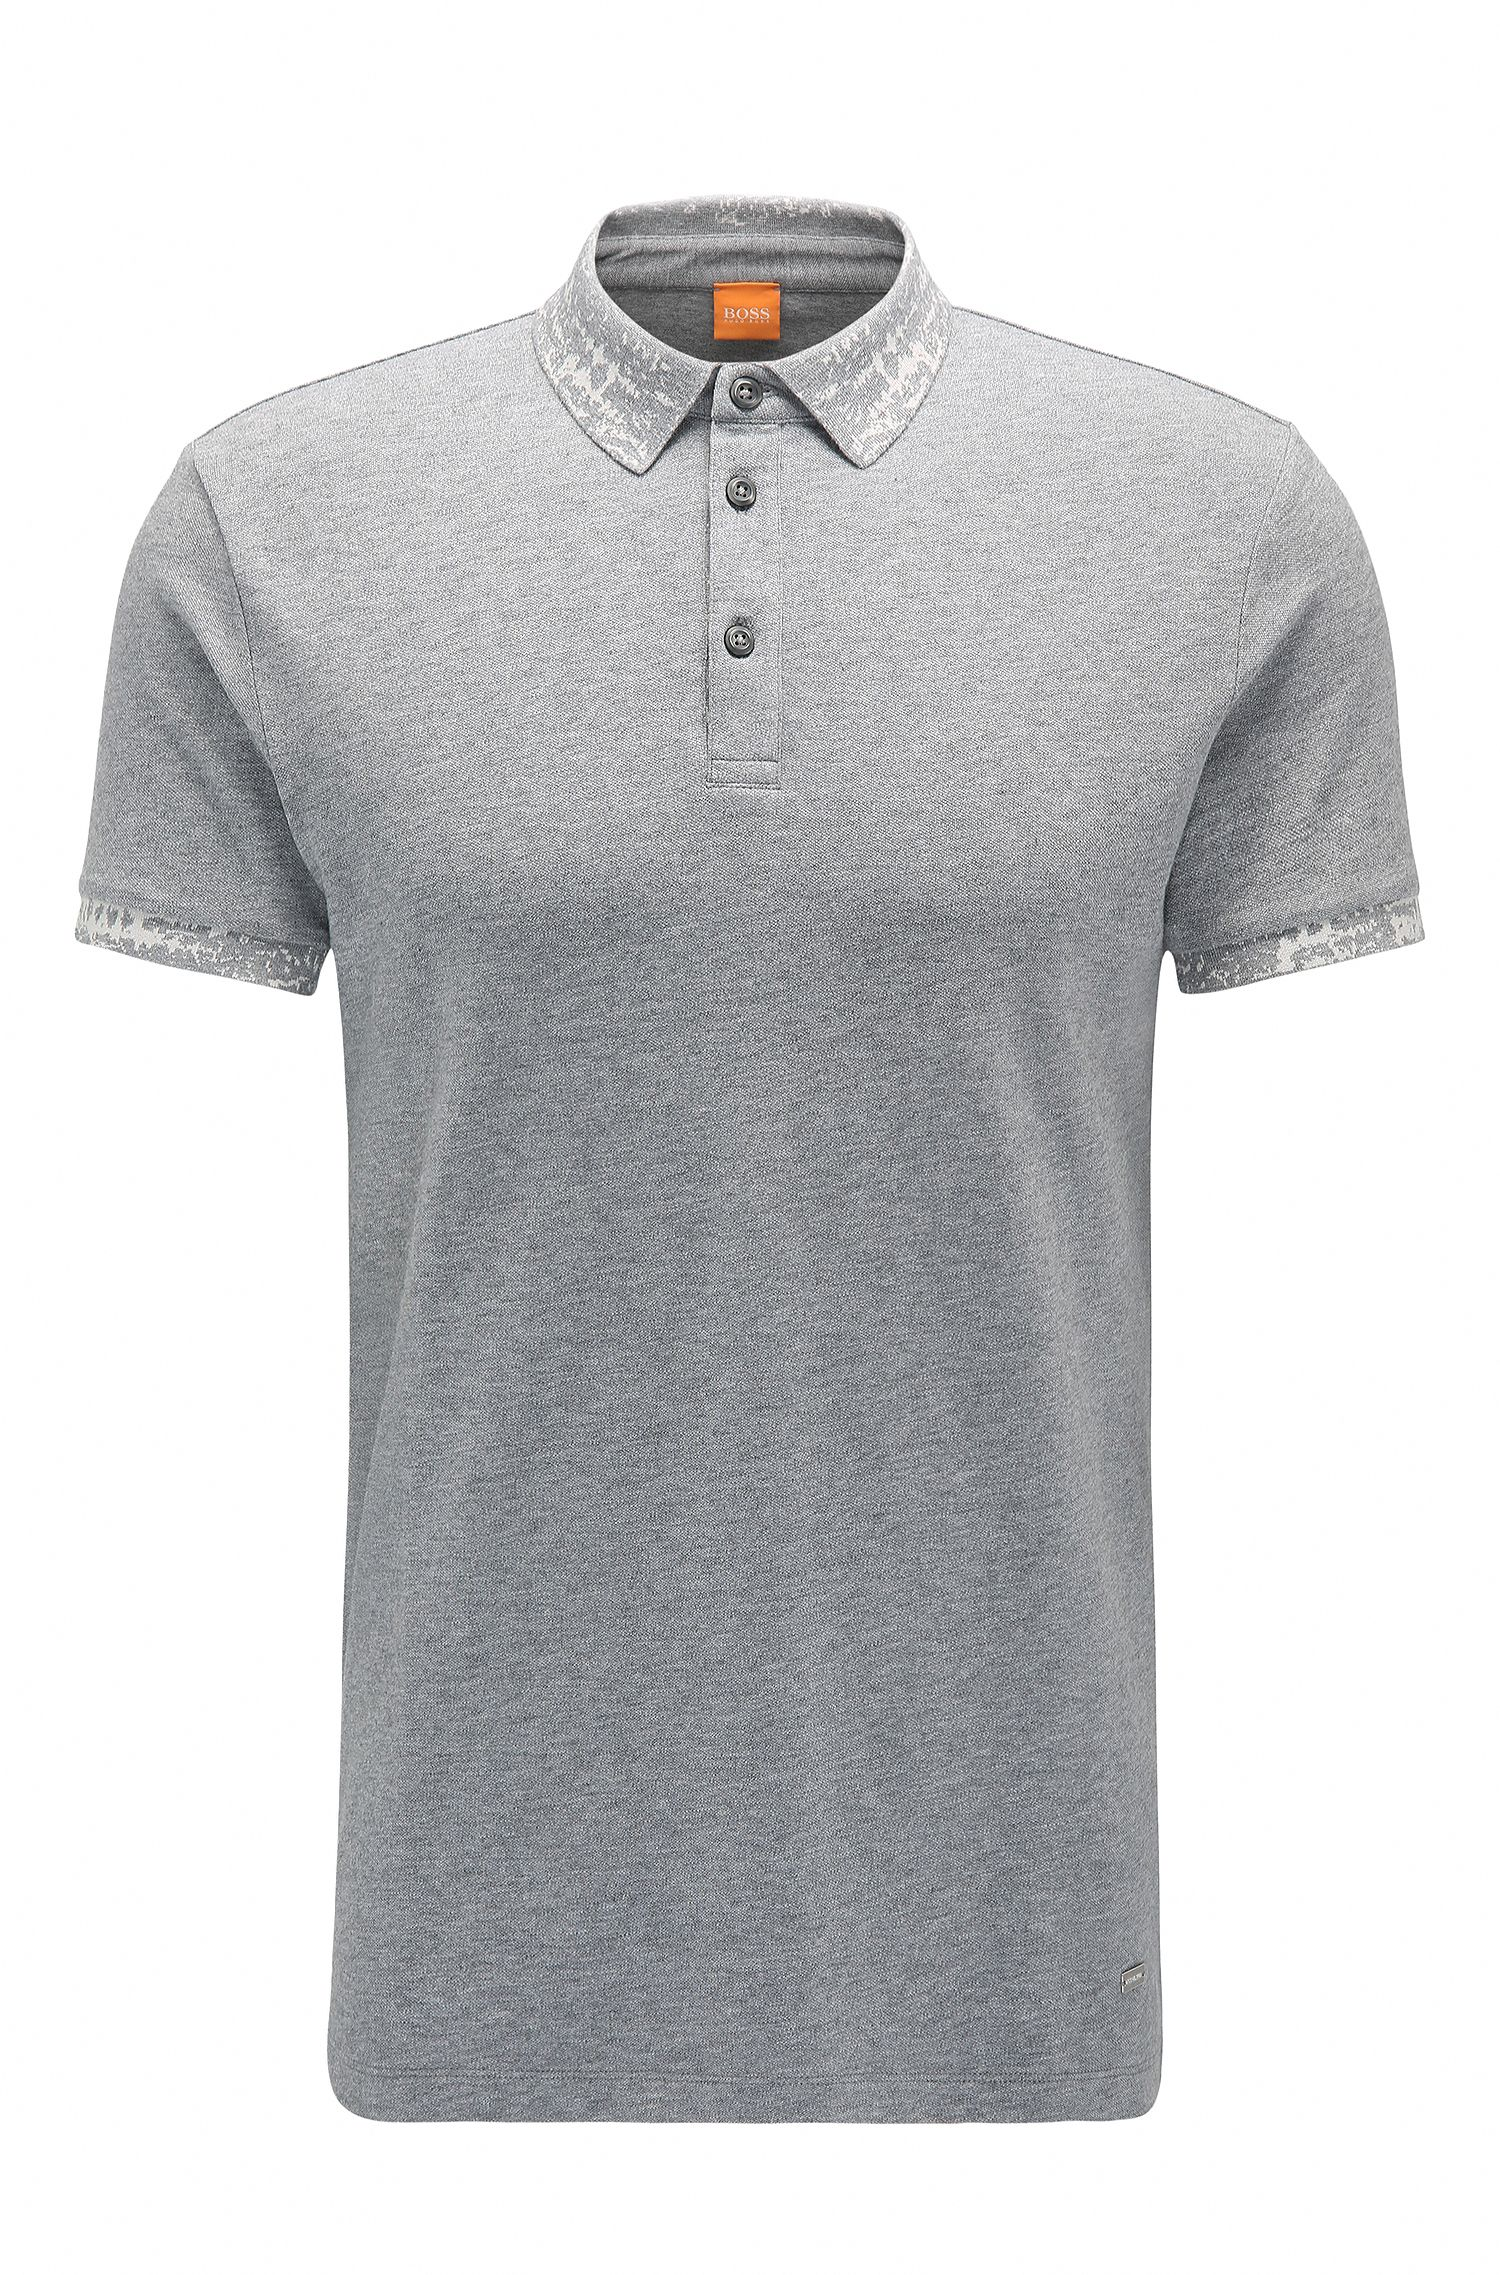 Regular-Fit Poloshirt aus Stretch-Baumwolle